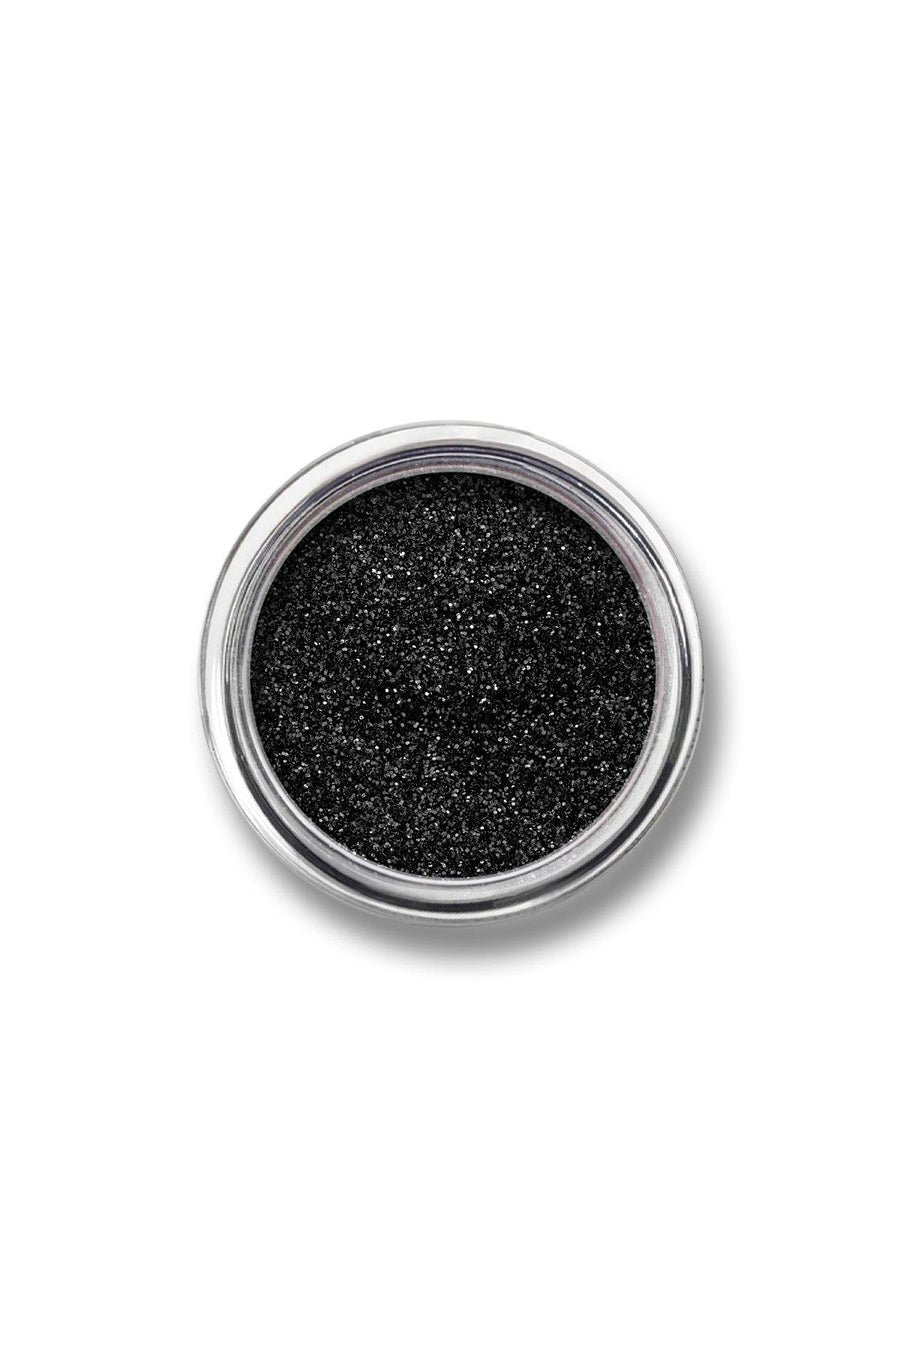 Glitter Powder #1 - Black - Blend Mineral Cosmetics